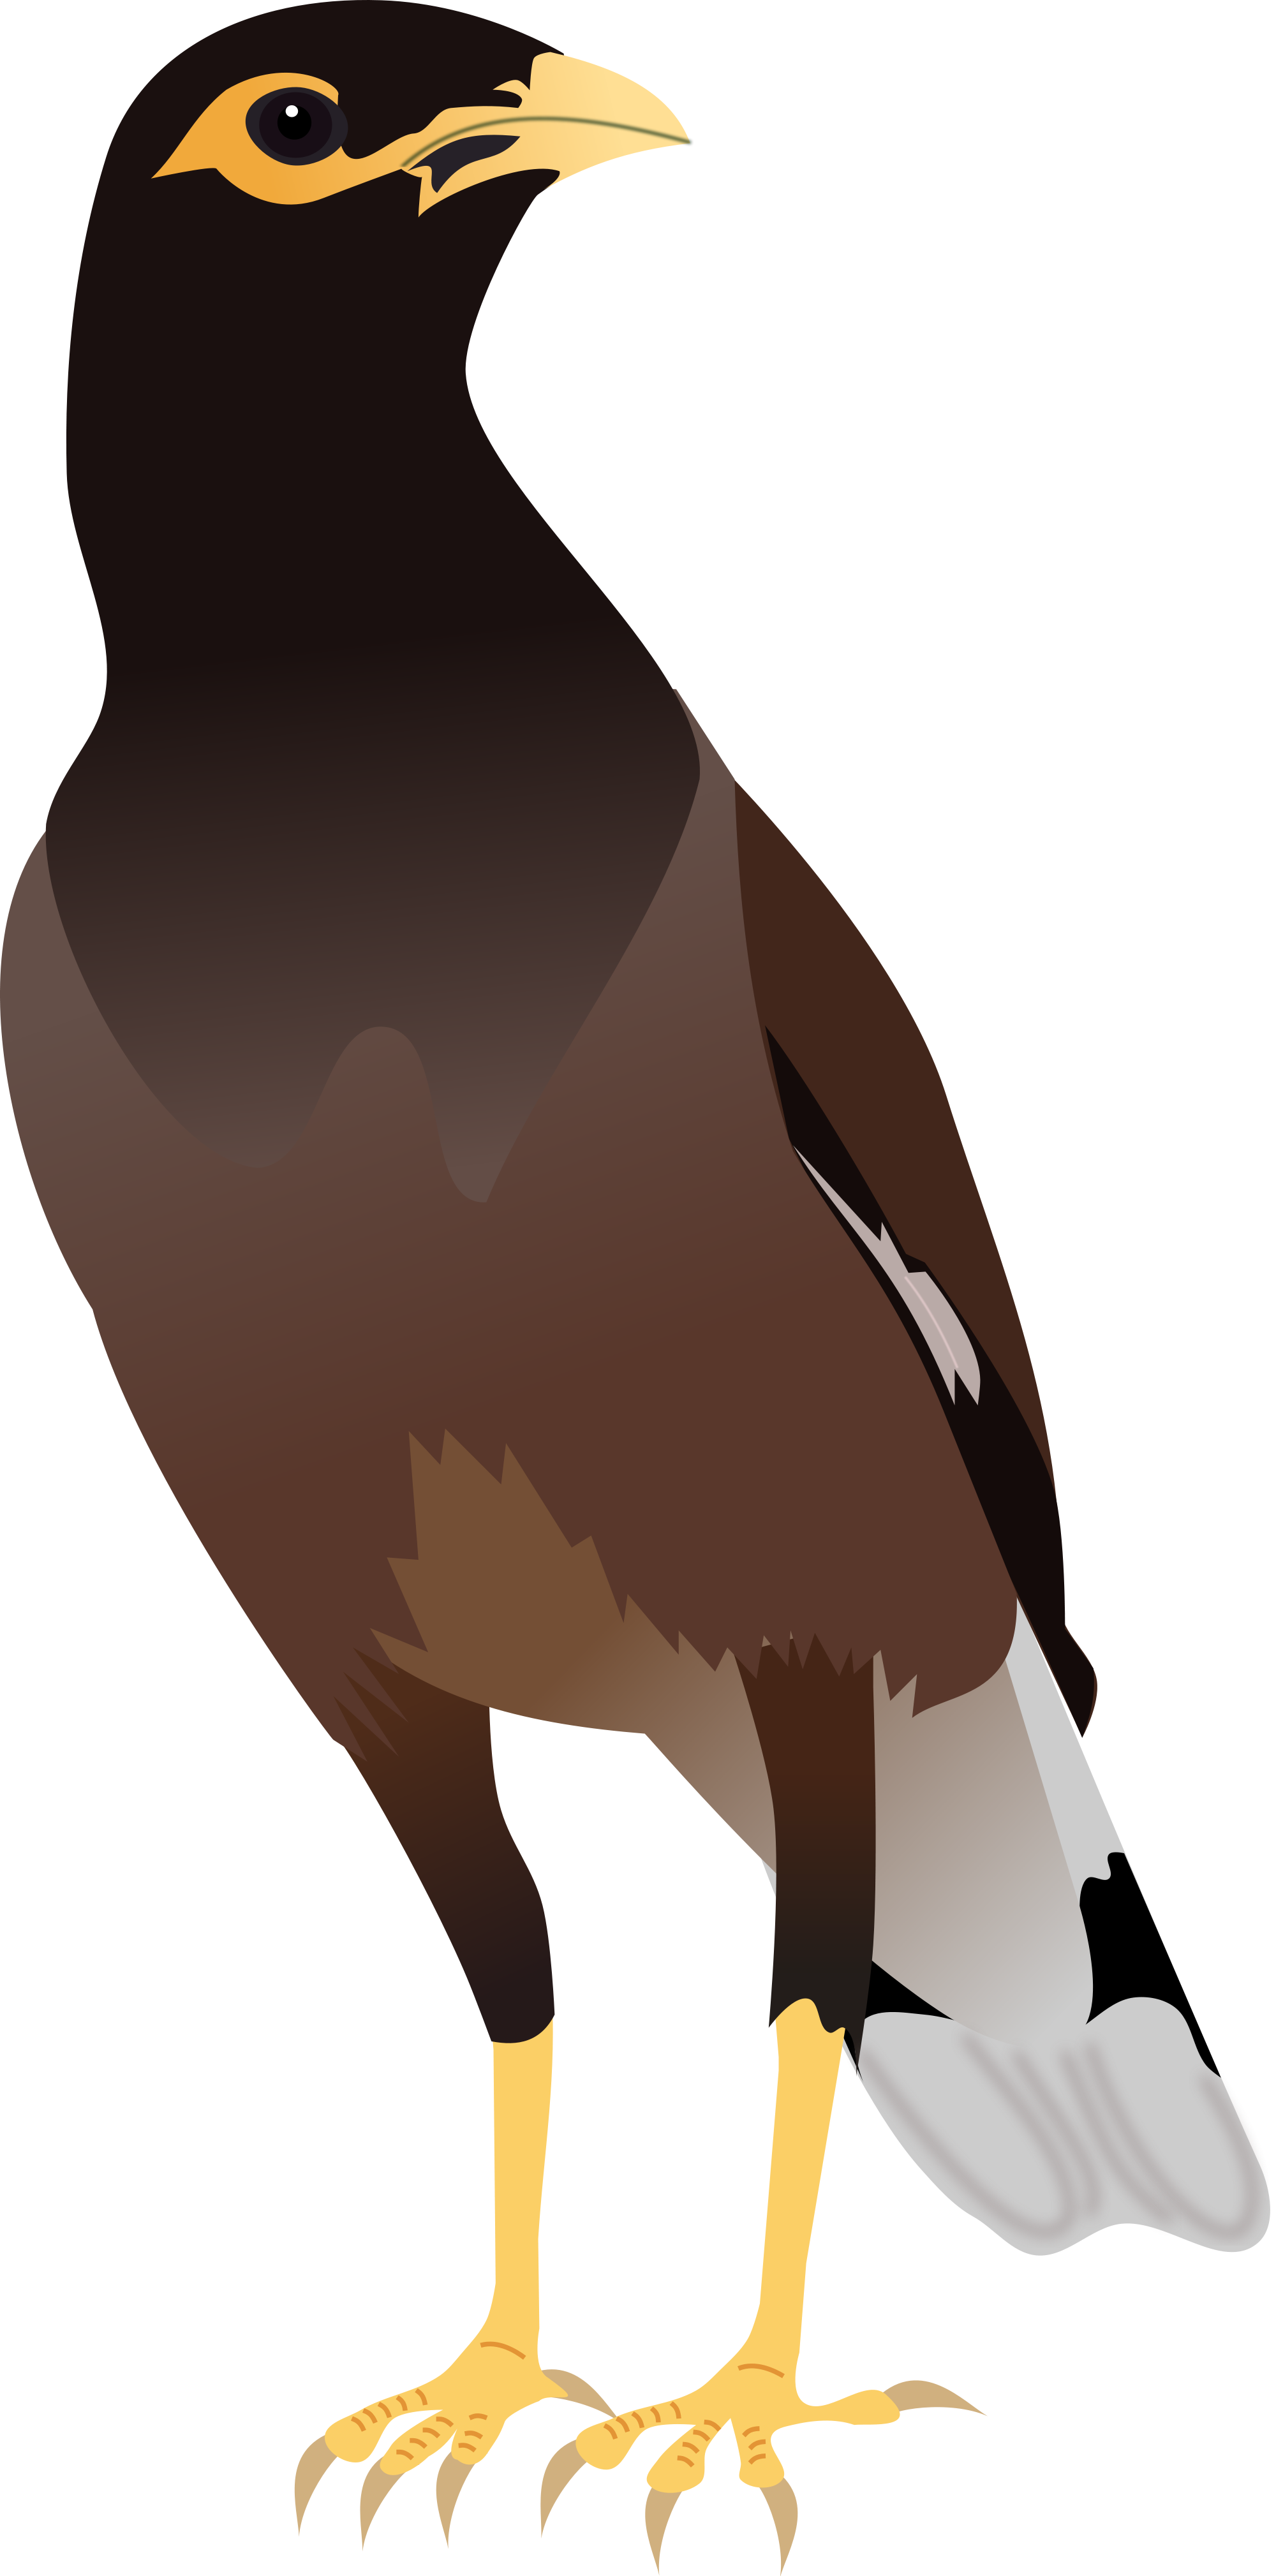 Myna clipart #3, Download drawings